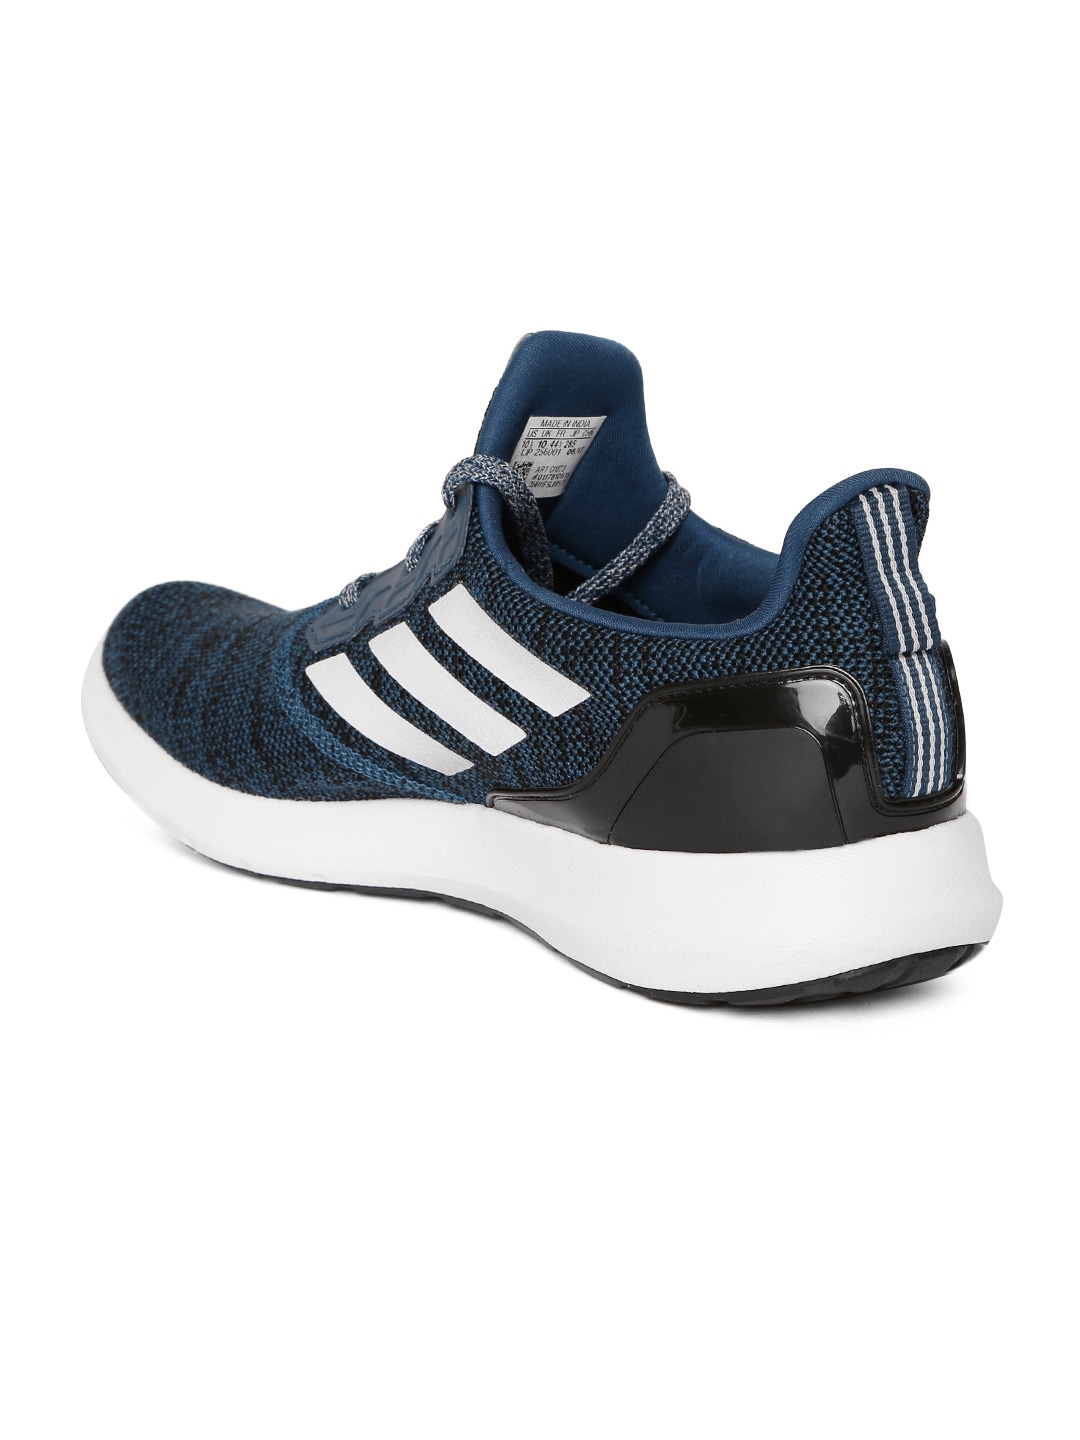 adidas shoes for girls black. adidas shoes for girls black a